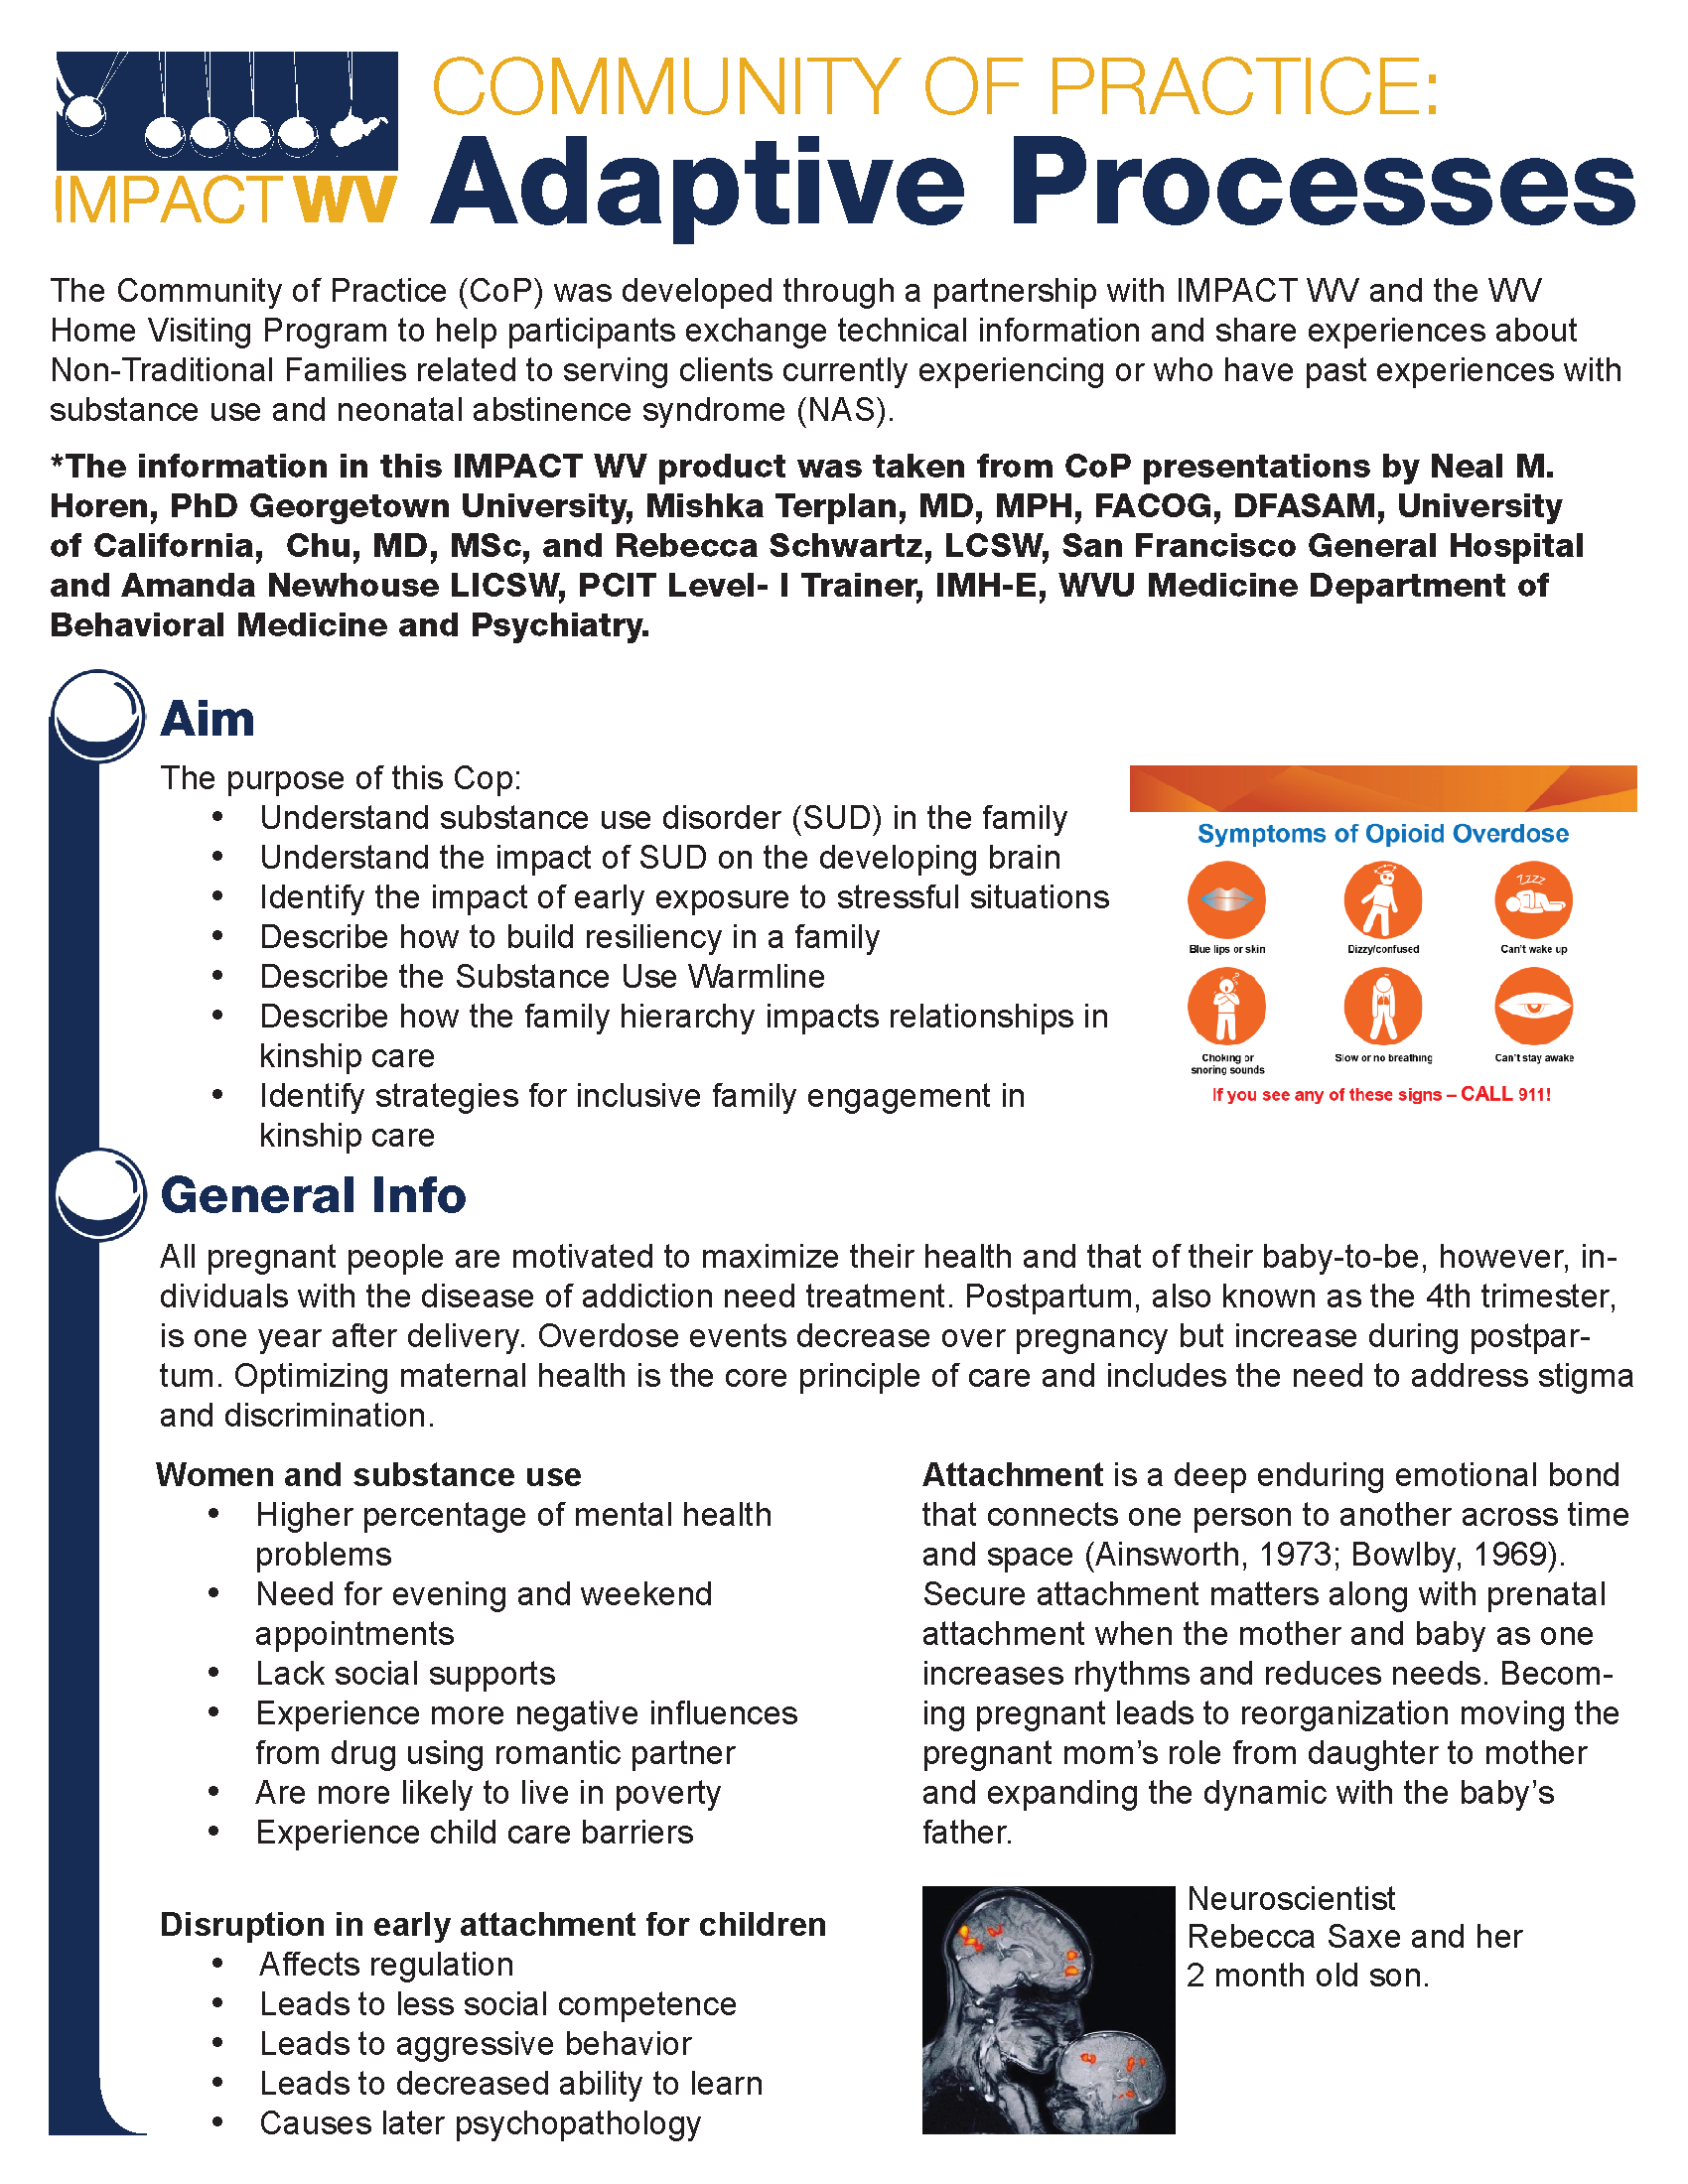 a snapshot of the Adaptive Process To Meet High Risk Families' Needs Summary Sheet (PDF)